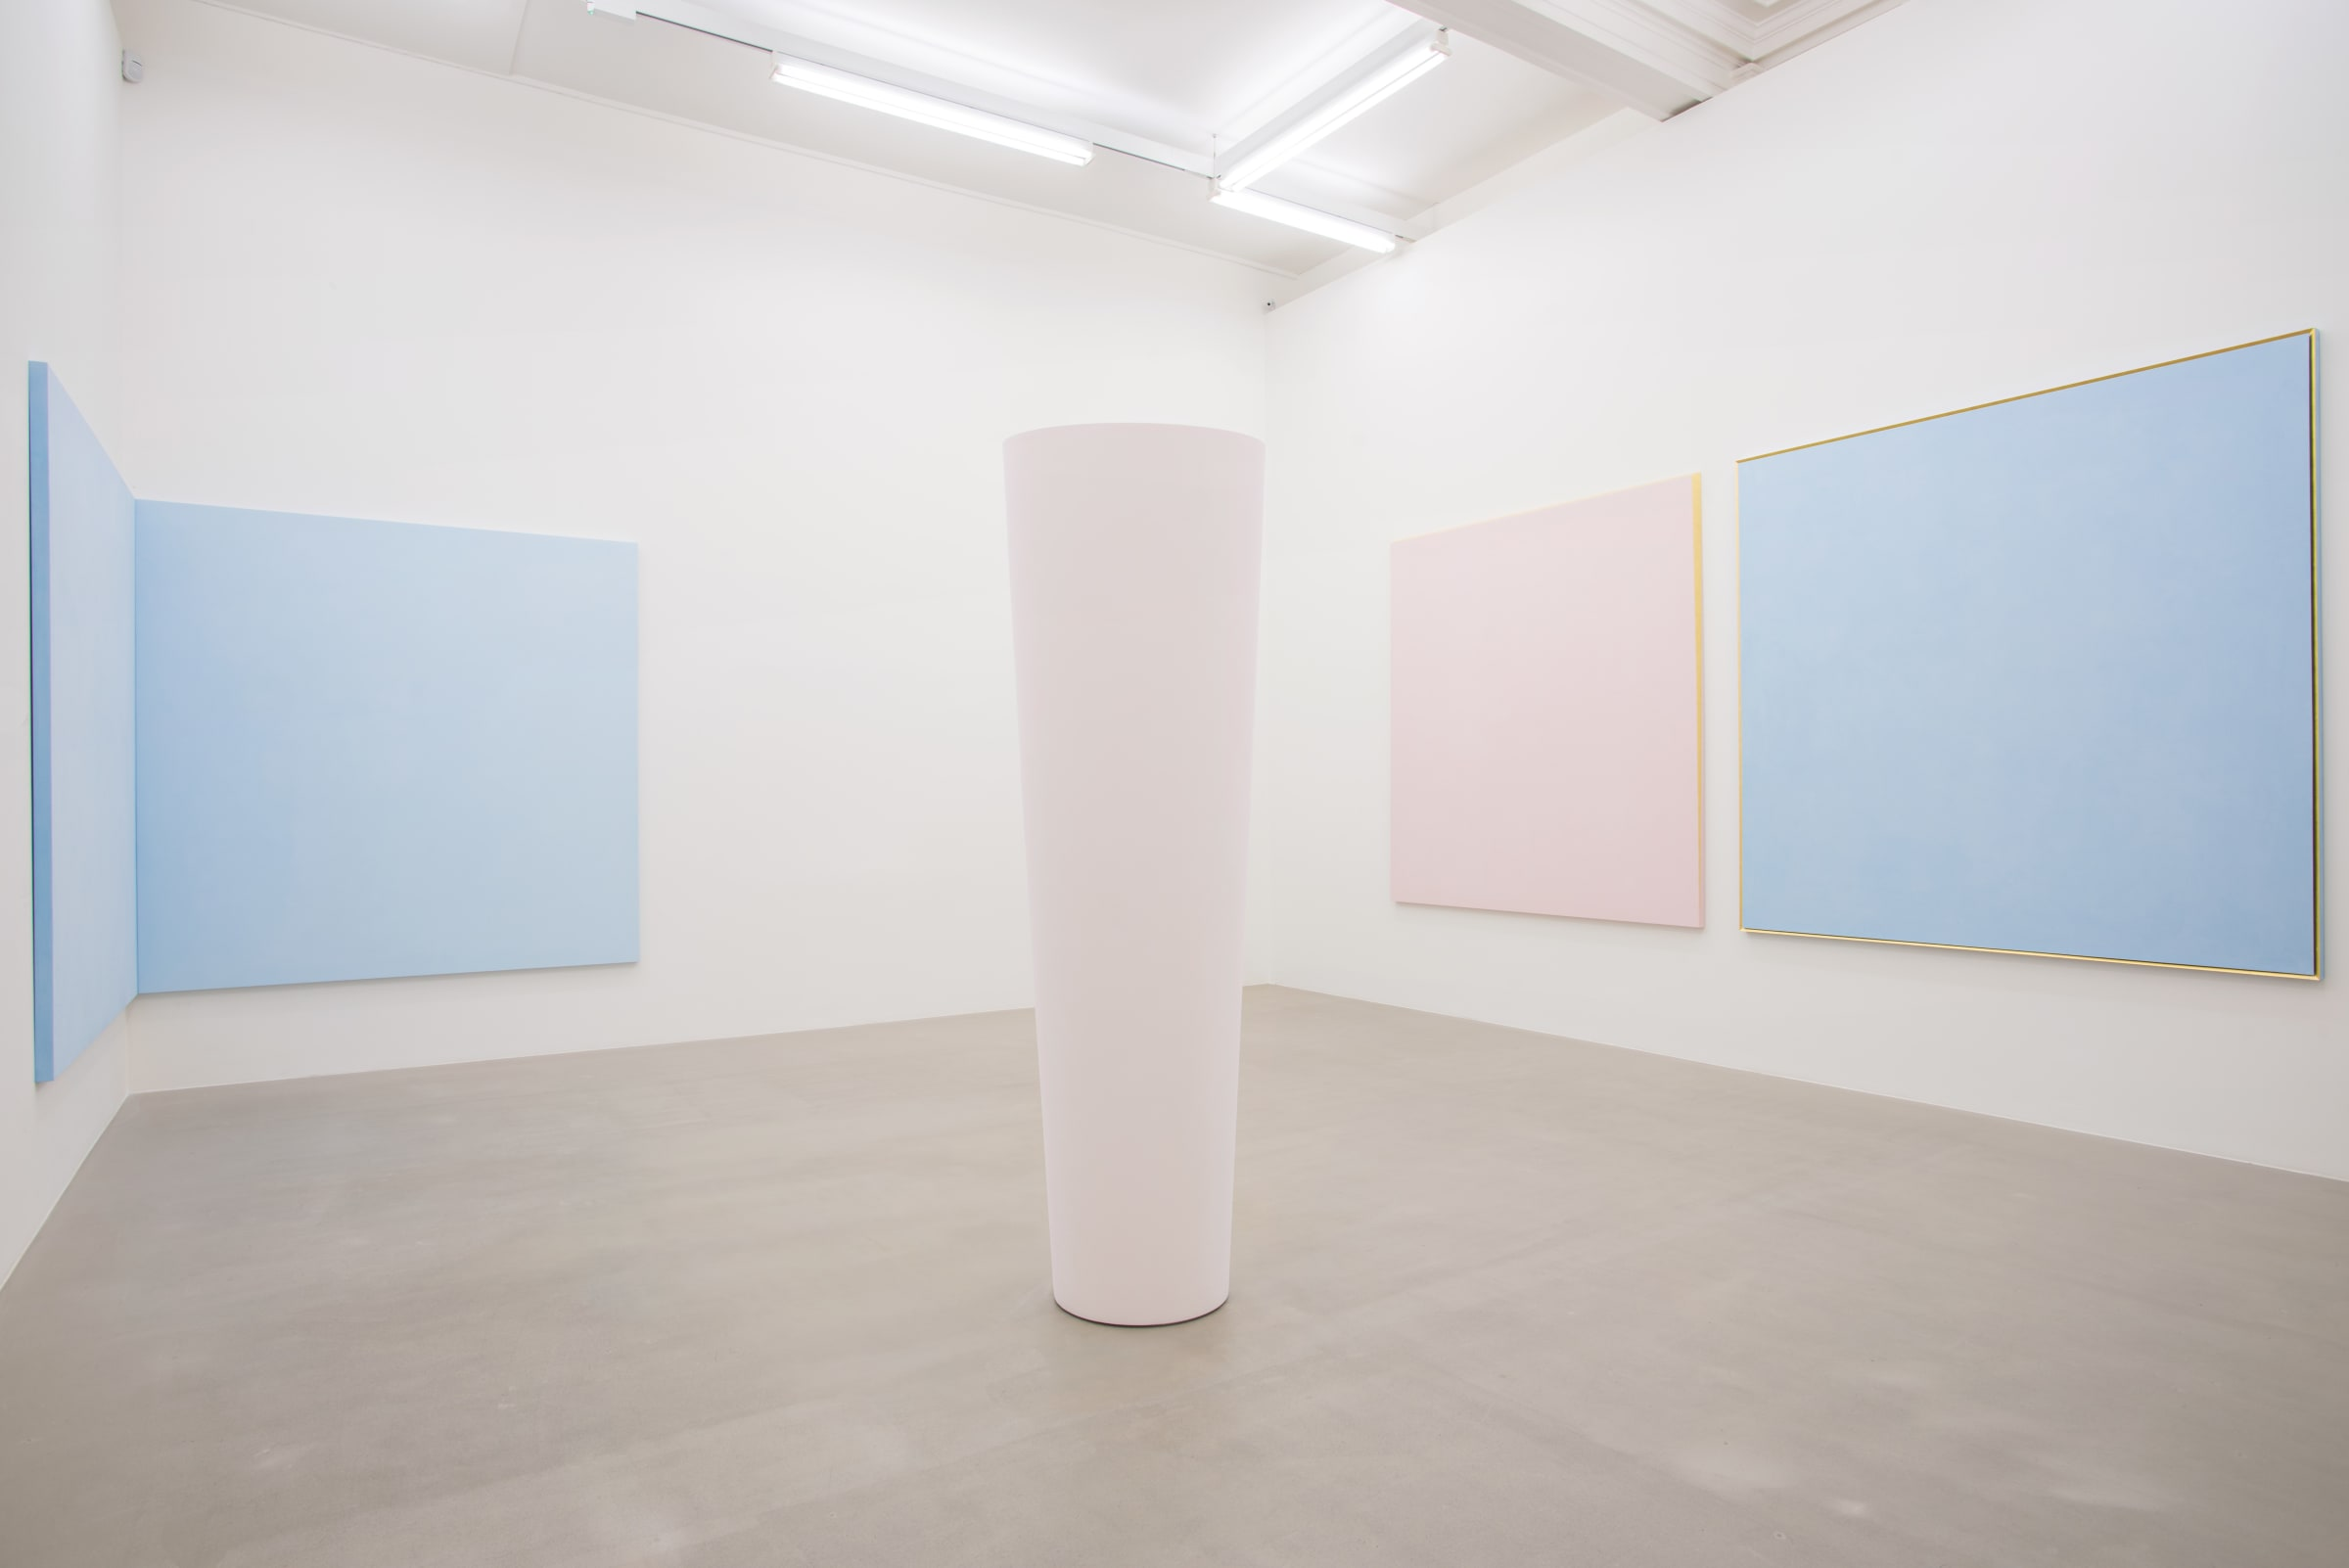 In a white room with grey stone floors, a light pink beam sits. On the right wall, a light pink painting hangs next to a sky blue painting, both framed by gold. In the left corner of the room, a light blue painting is bisected, sitting in equal halves on